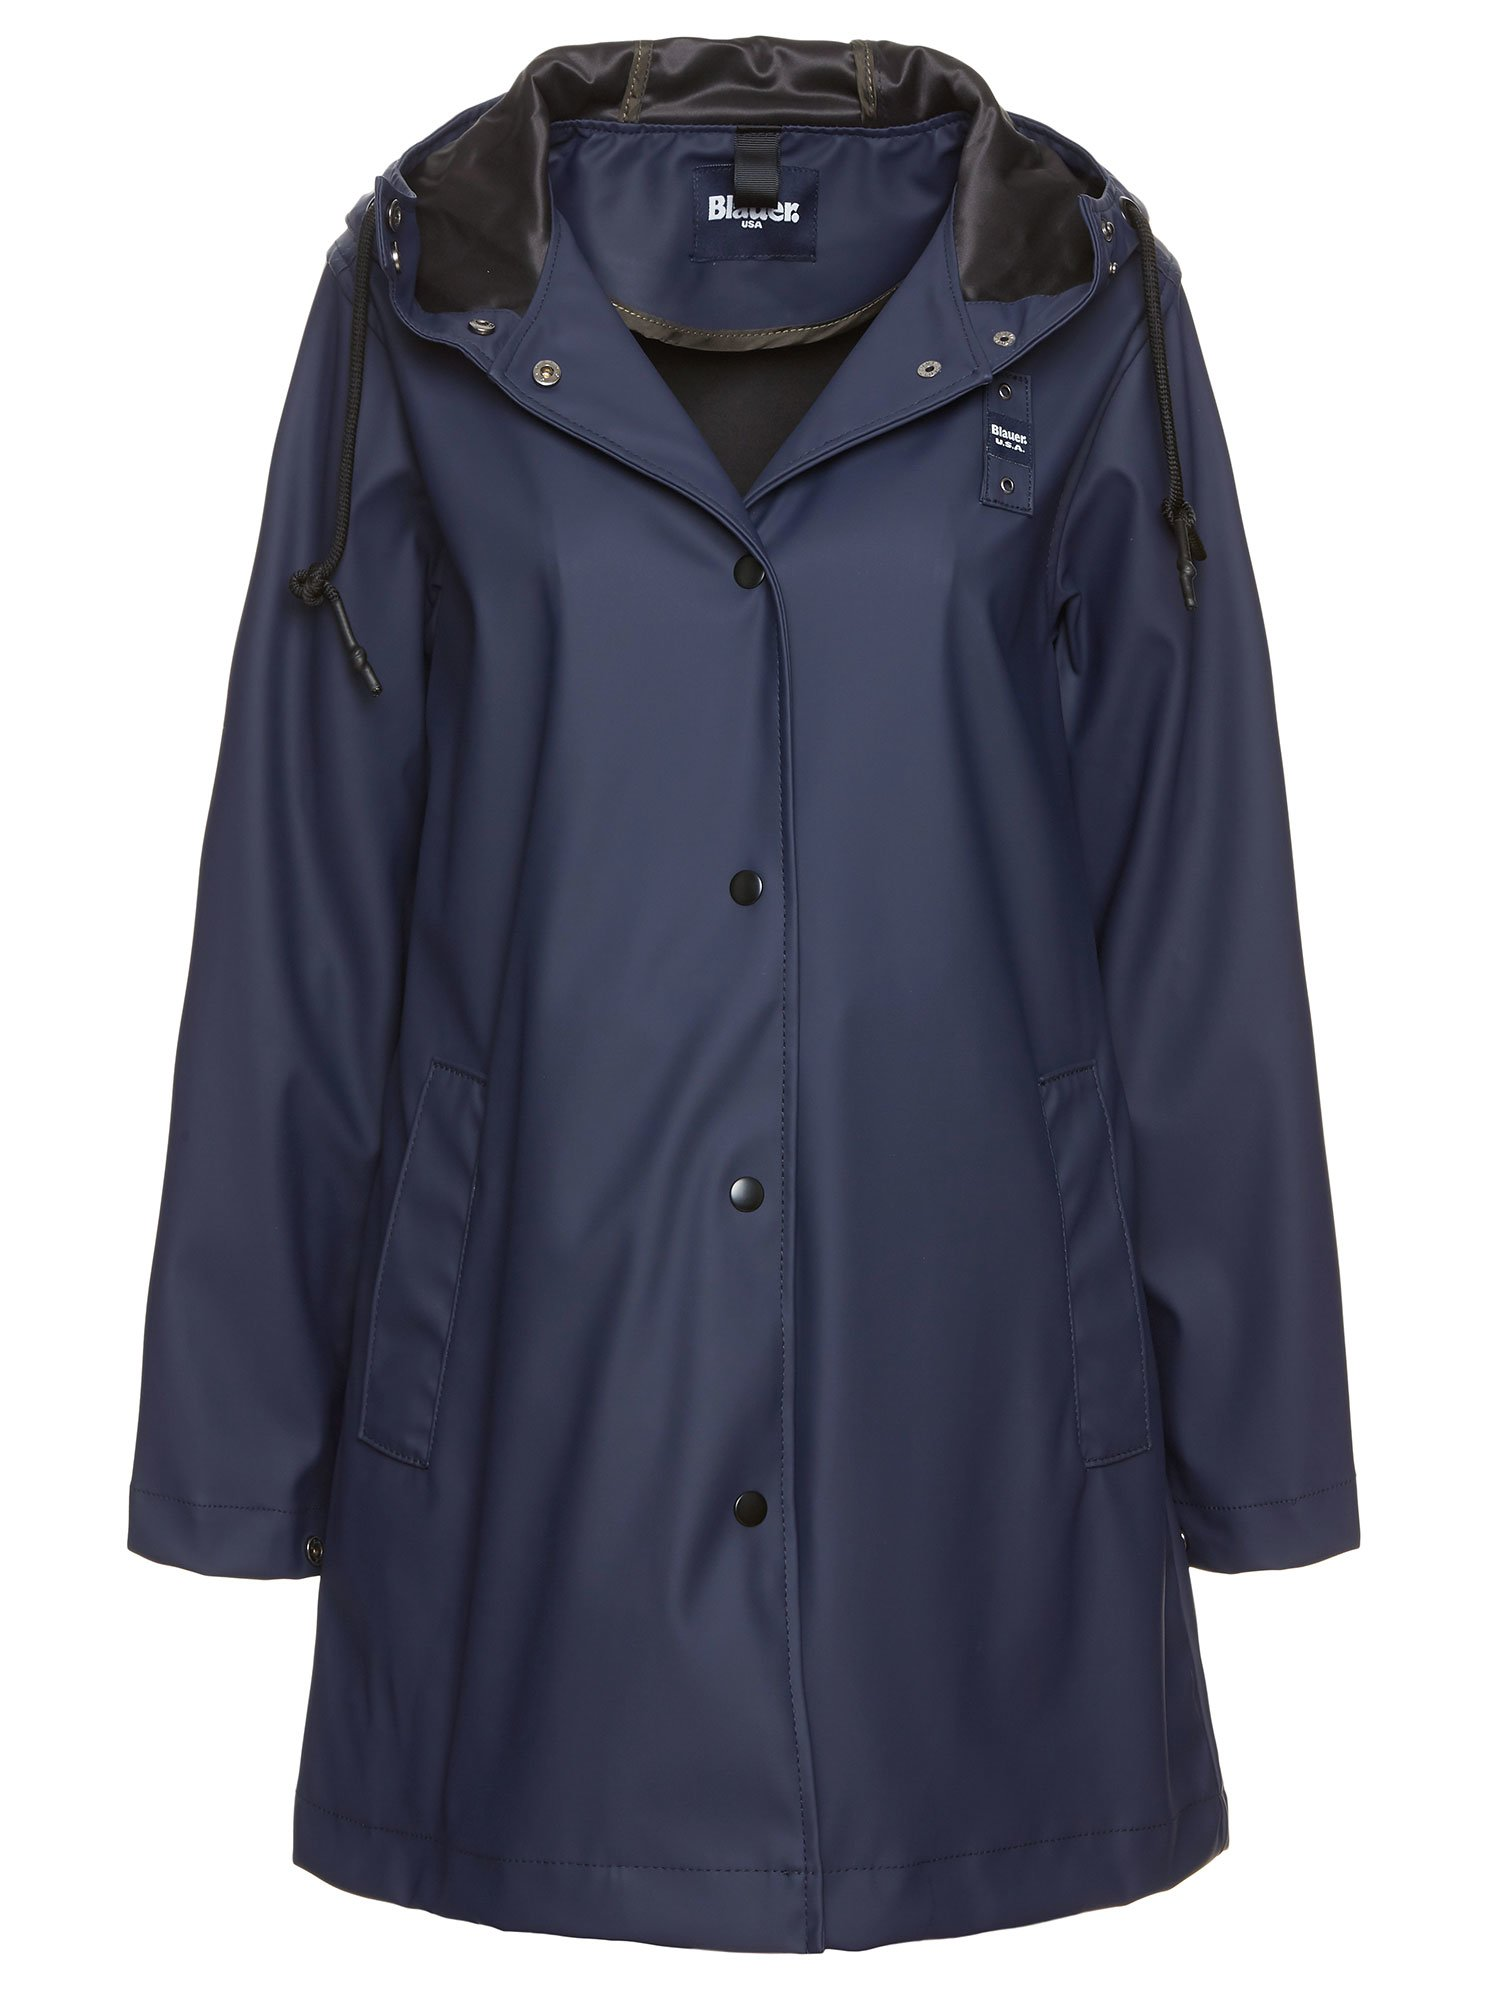 UNLINED RAINCOAT WITH SILVER METALLIC EFFECT - Blauer